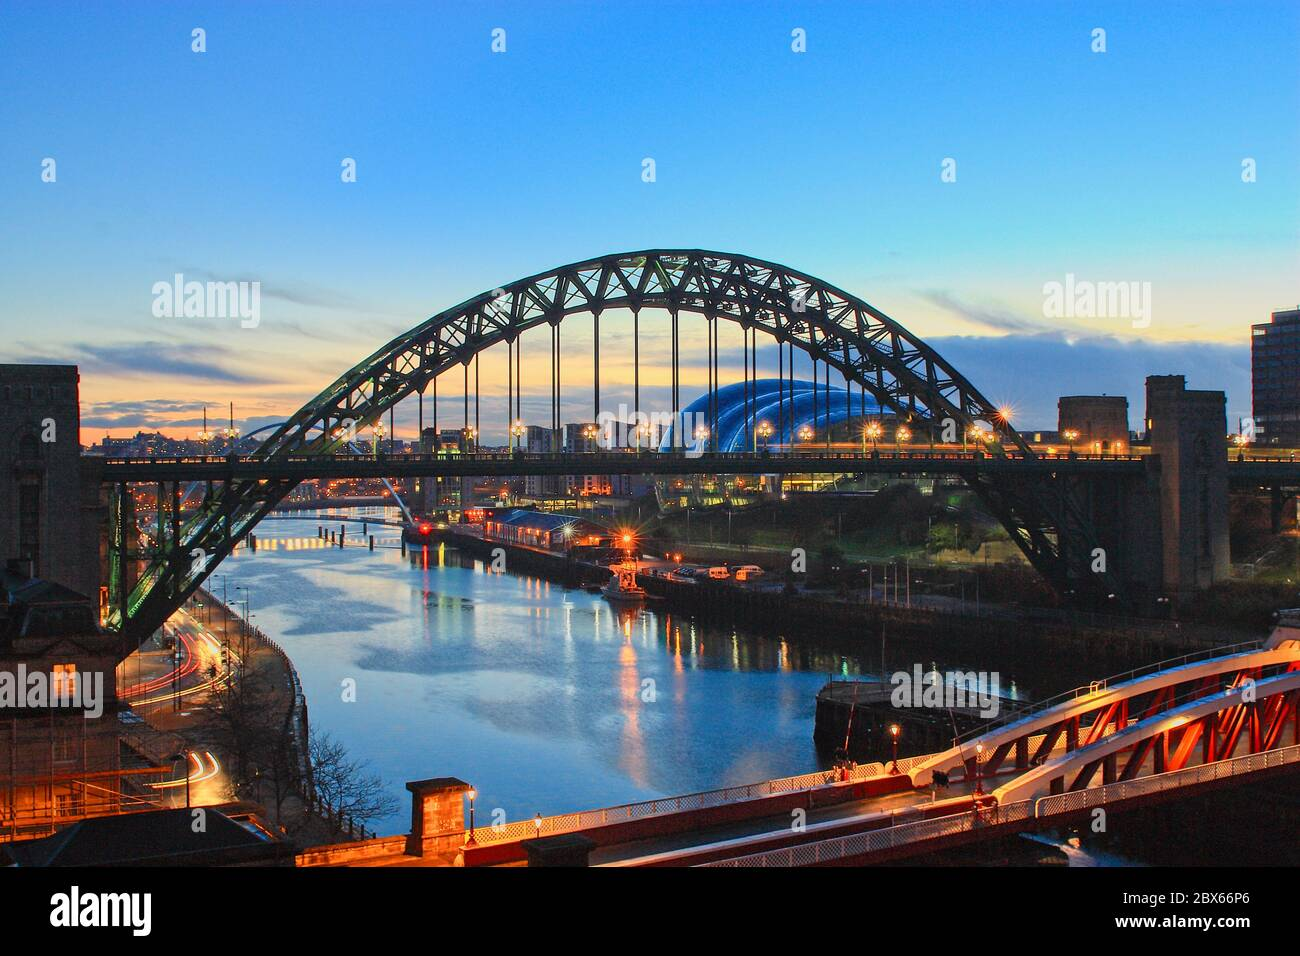 The Tyne Bridge in the blue hour at dawn spanning the River Tyne linking Newcastle and Gateshead in Tyne and Wear, North-East England. Stock Photo